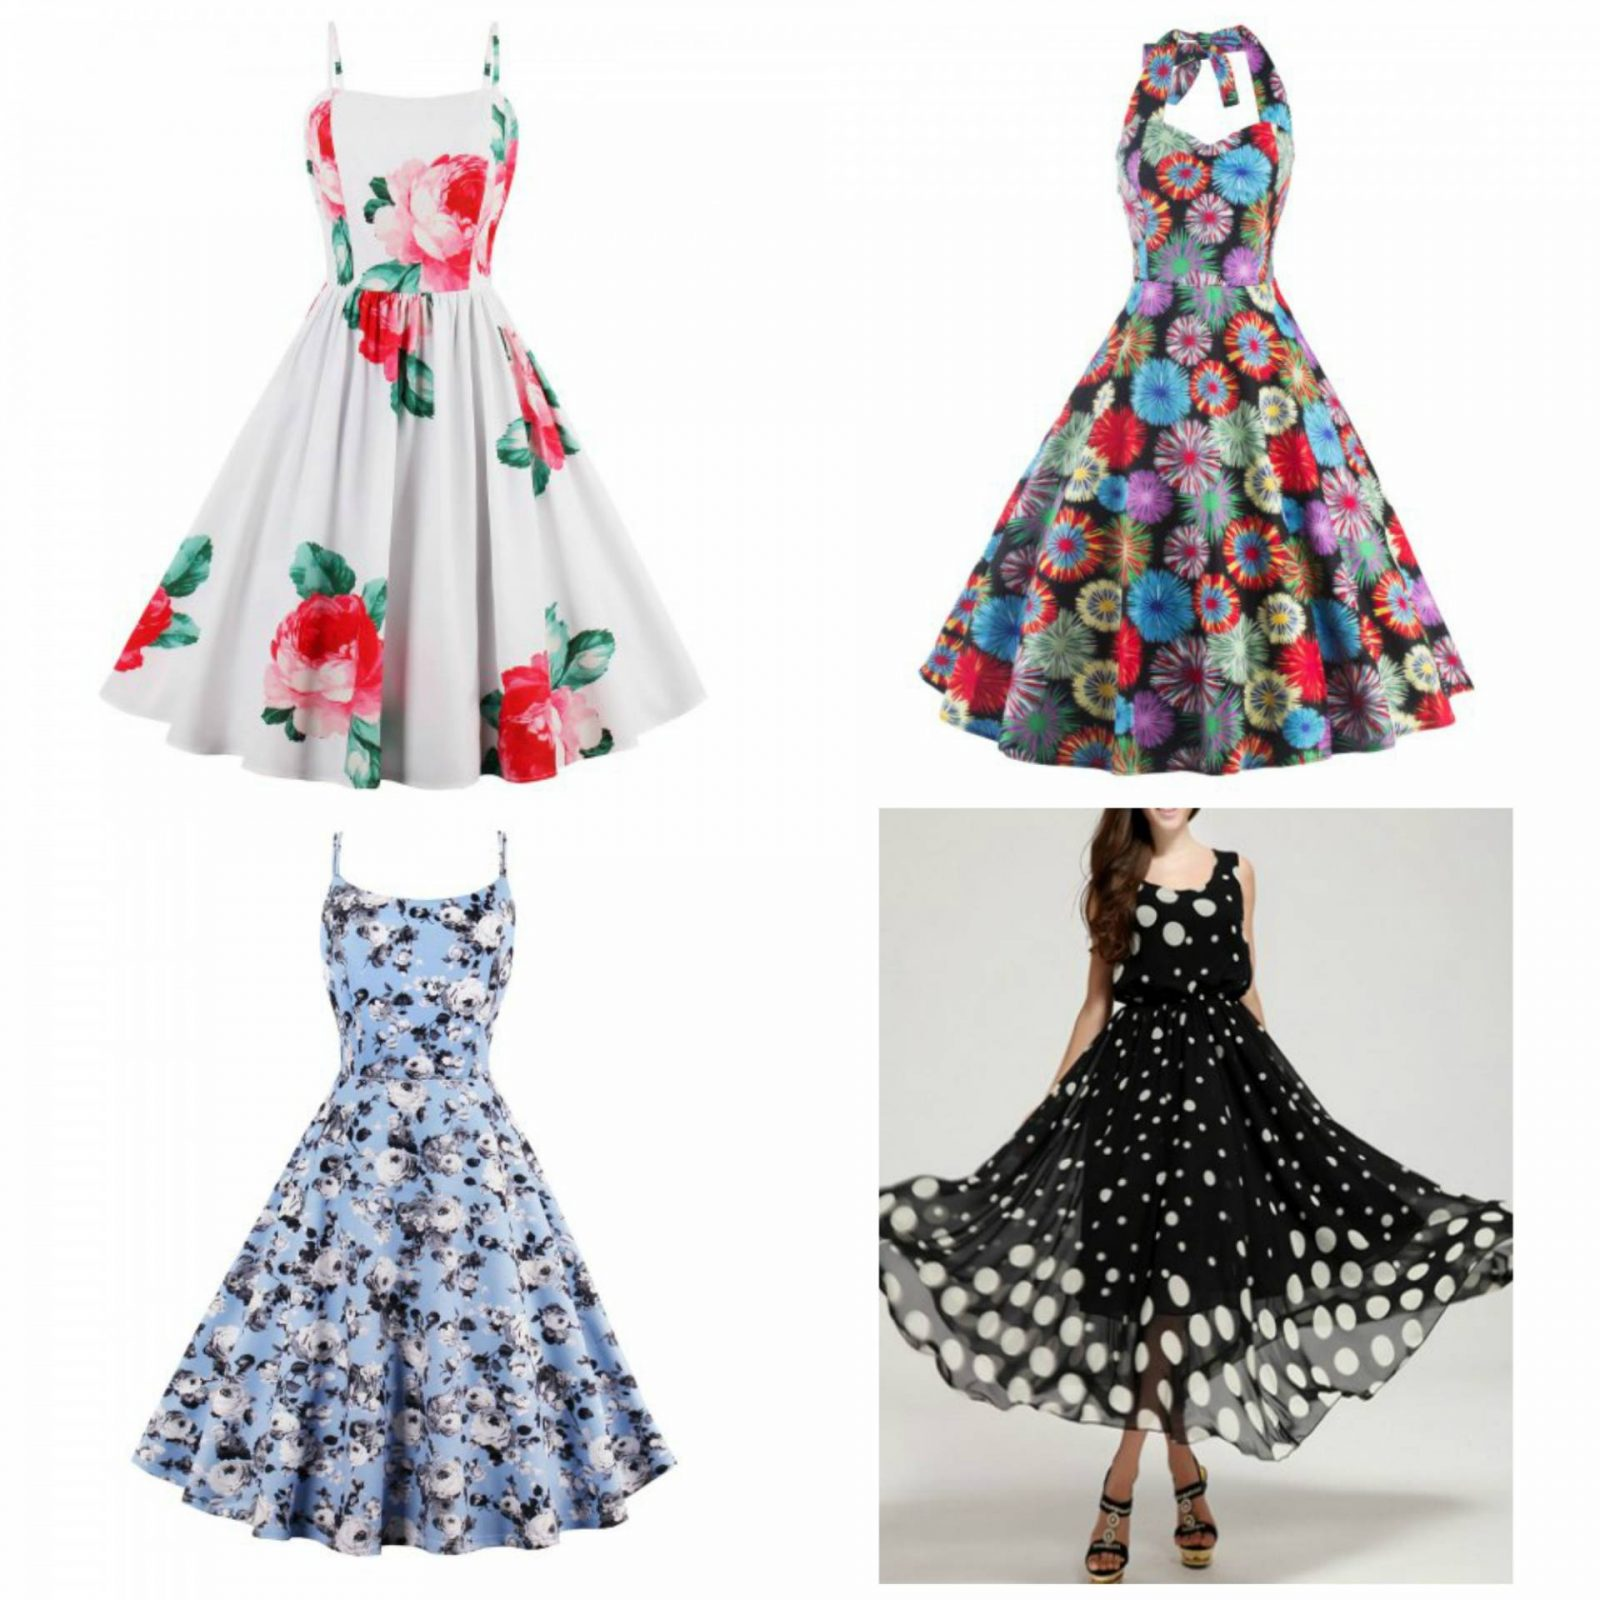 Rosegal Wishlist: Classy Dresses With a Vintage Twist